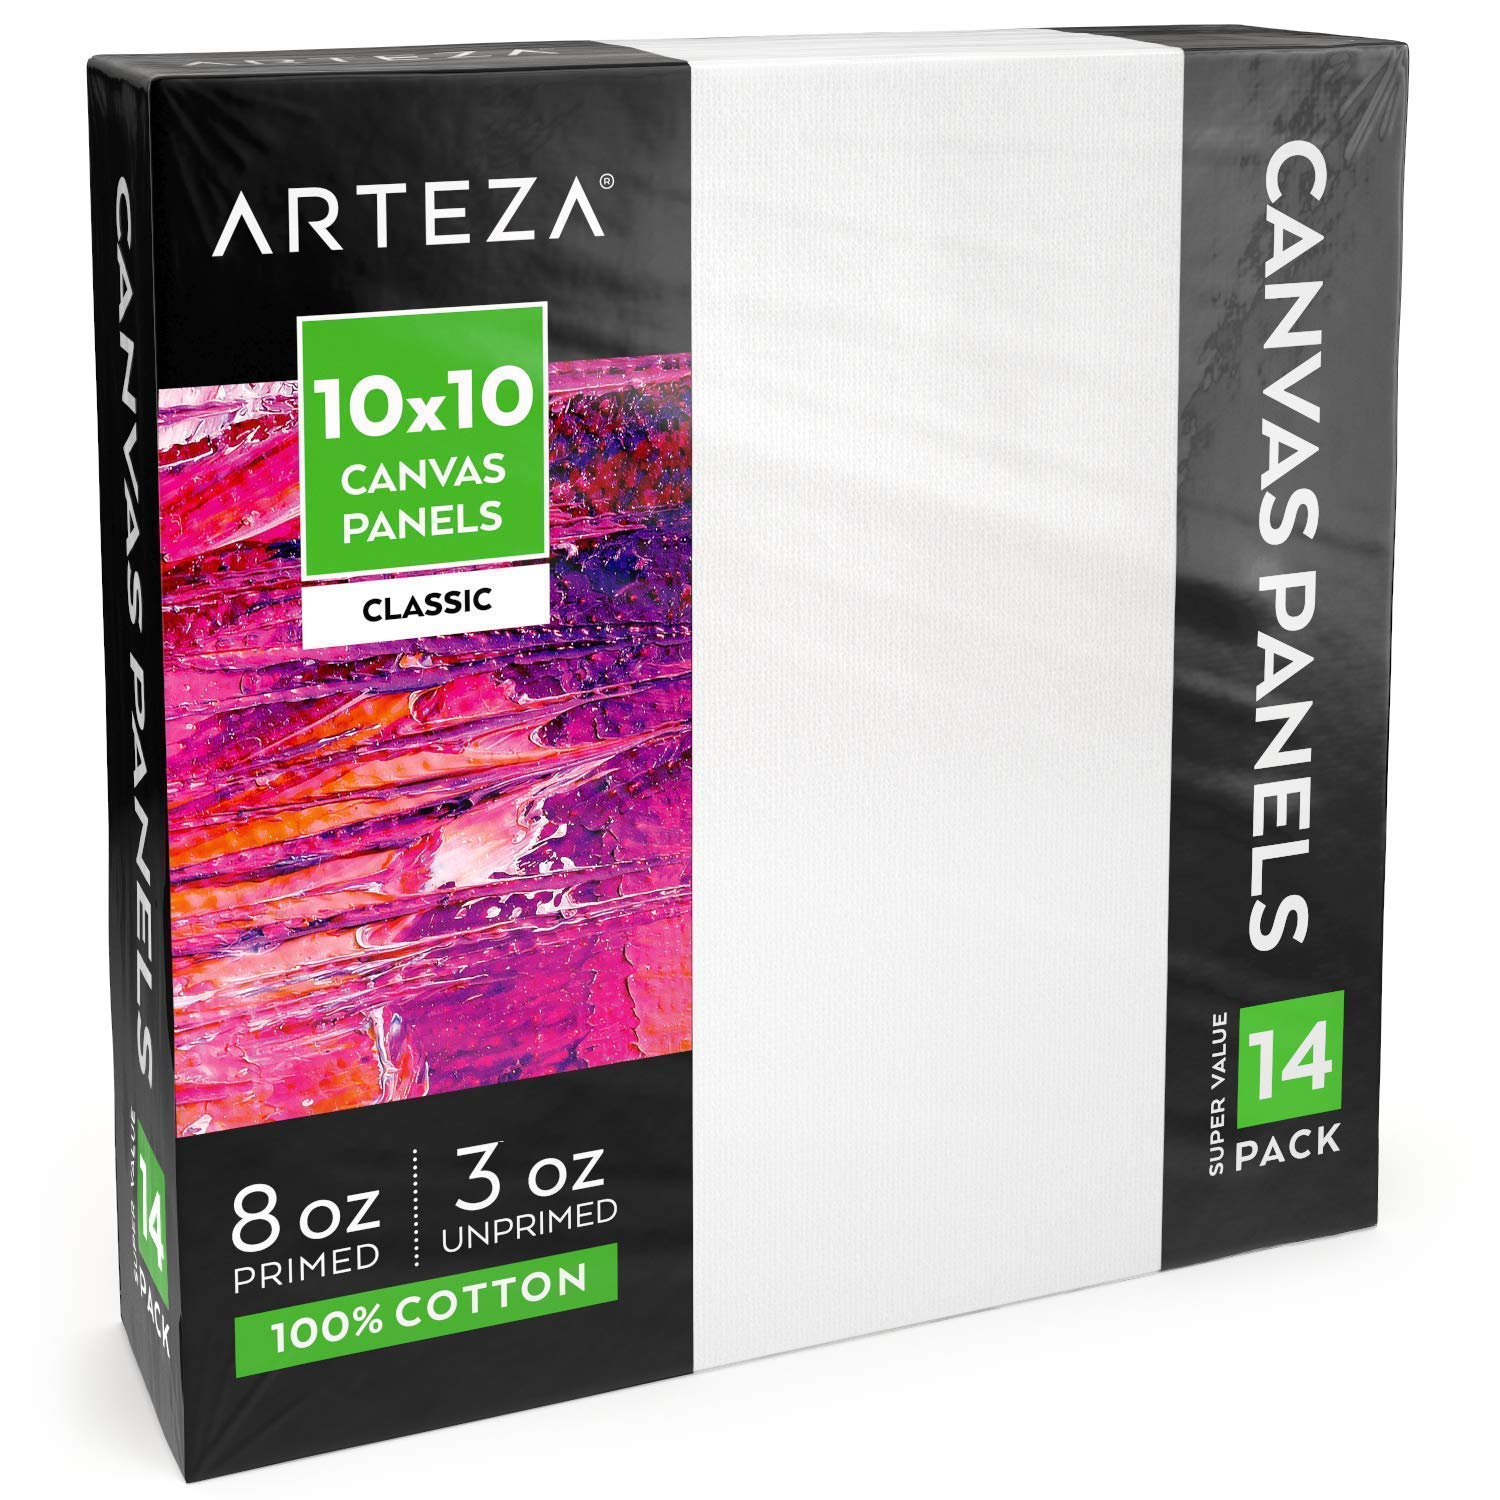 Arteza Painting Canvas Panels, 10x10, Pack of 14, Primed White, 100% Cotton with Recycled Board Core, for Acrylic, Oil, Other Wet Or Dry Art Media, for Artists, Hobby Painters, Kids